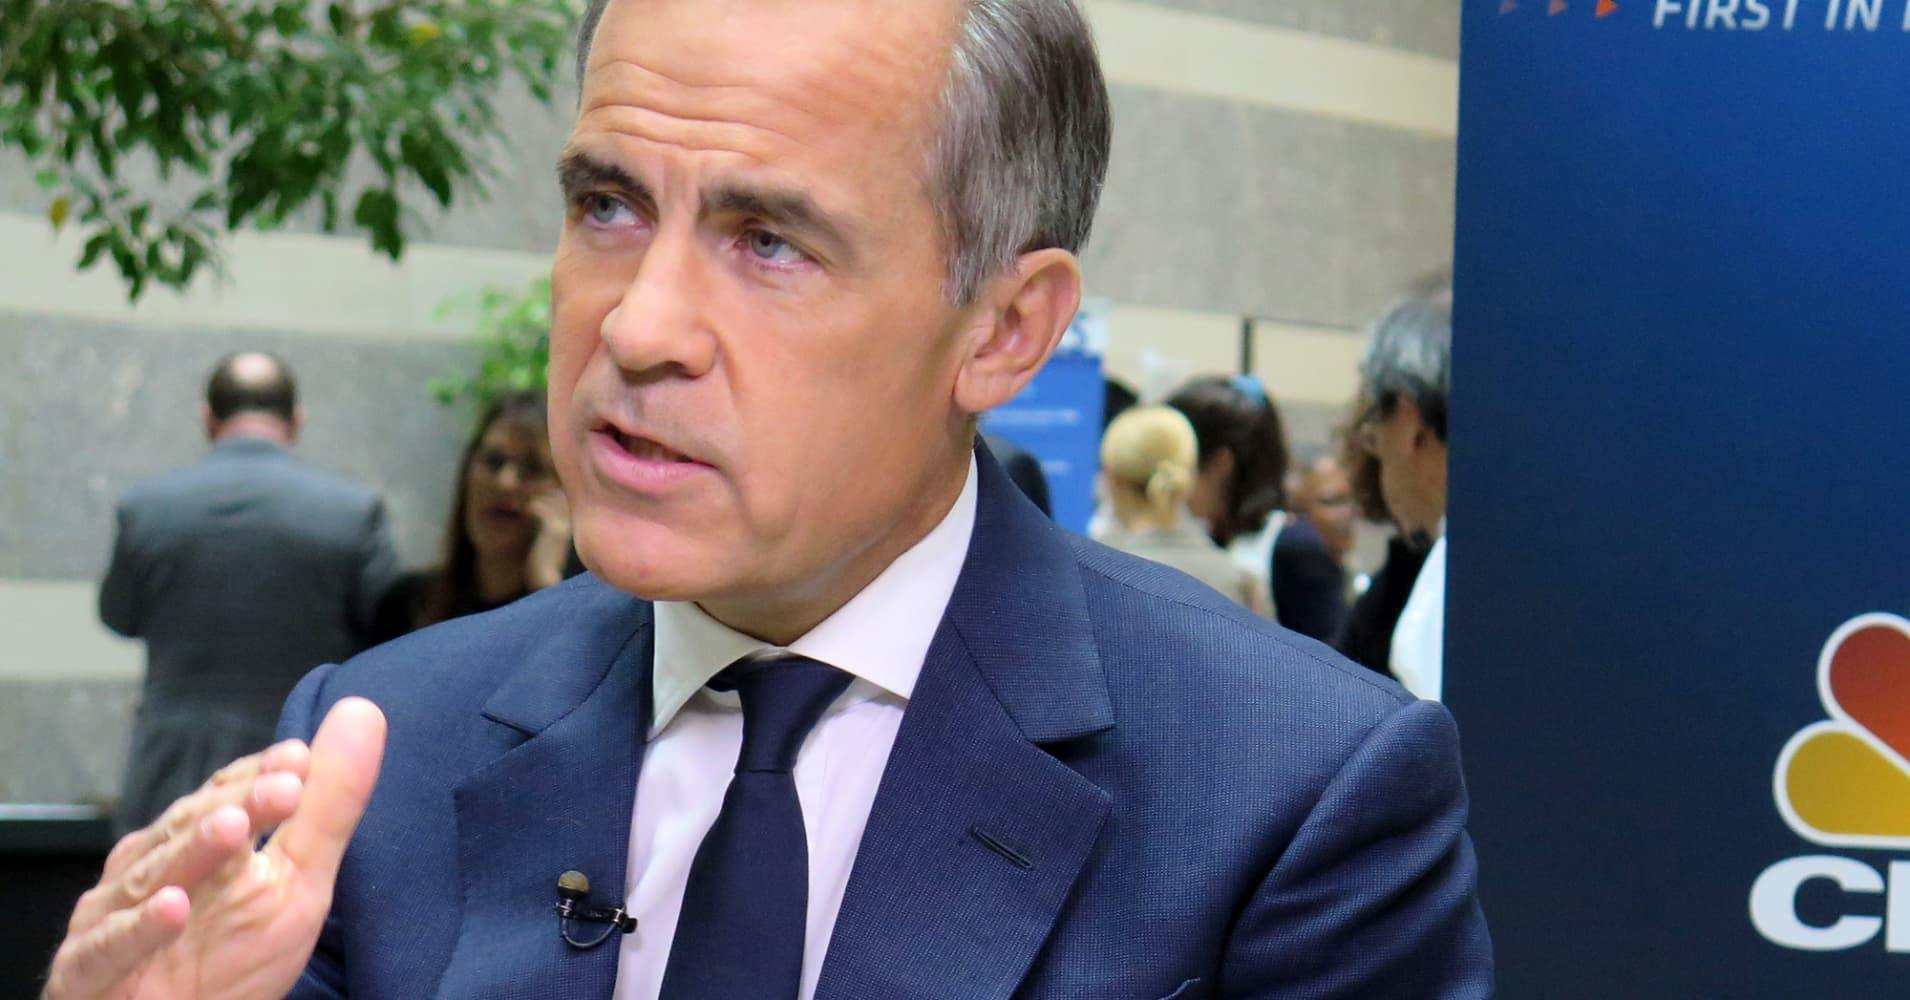 Watch Bank of England Governor Mark Carney speak live in New York